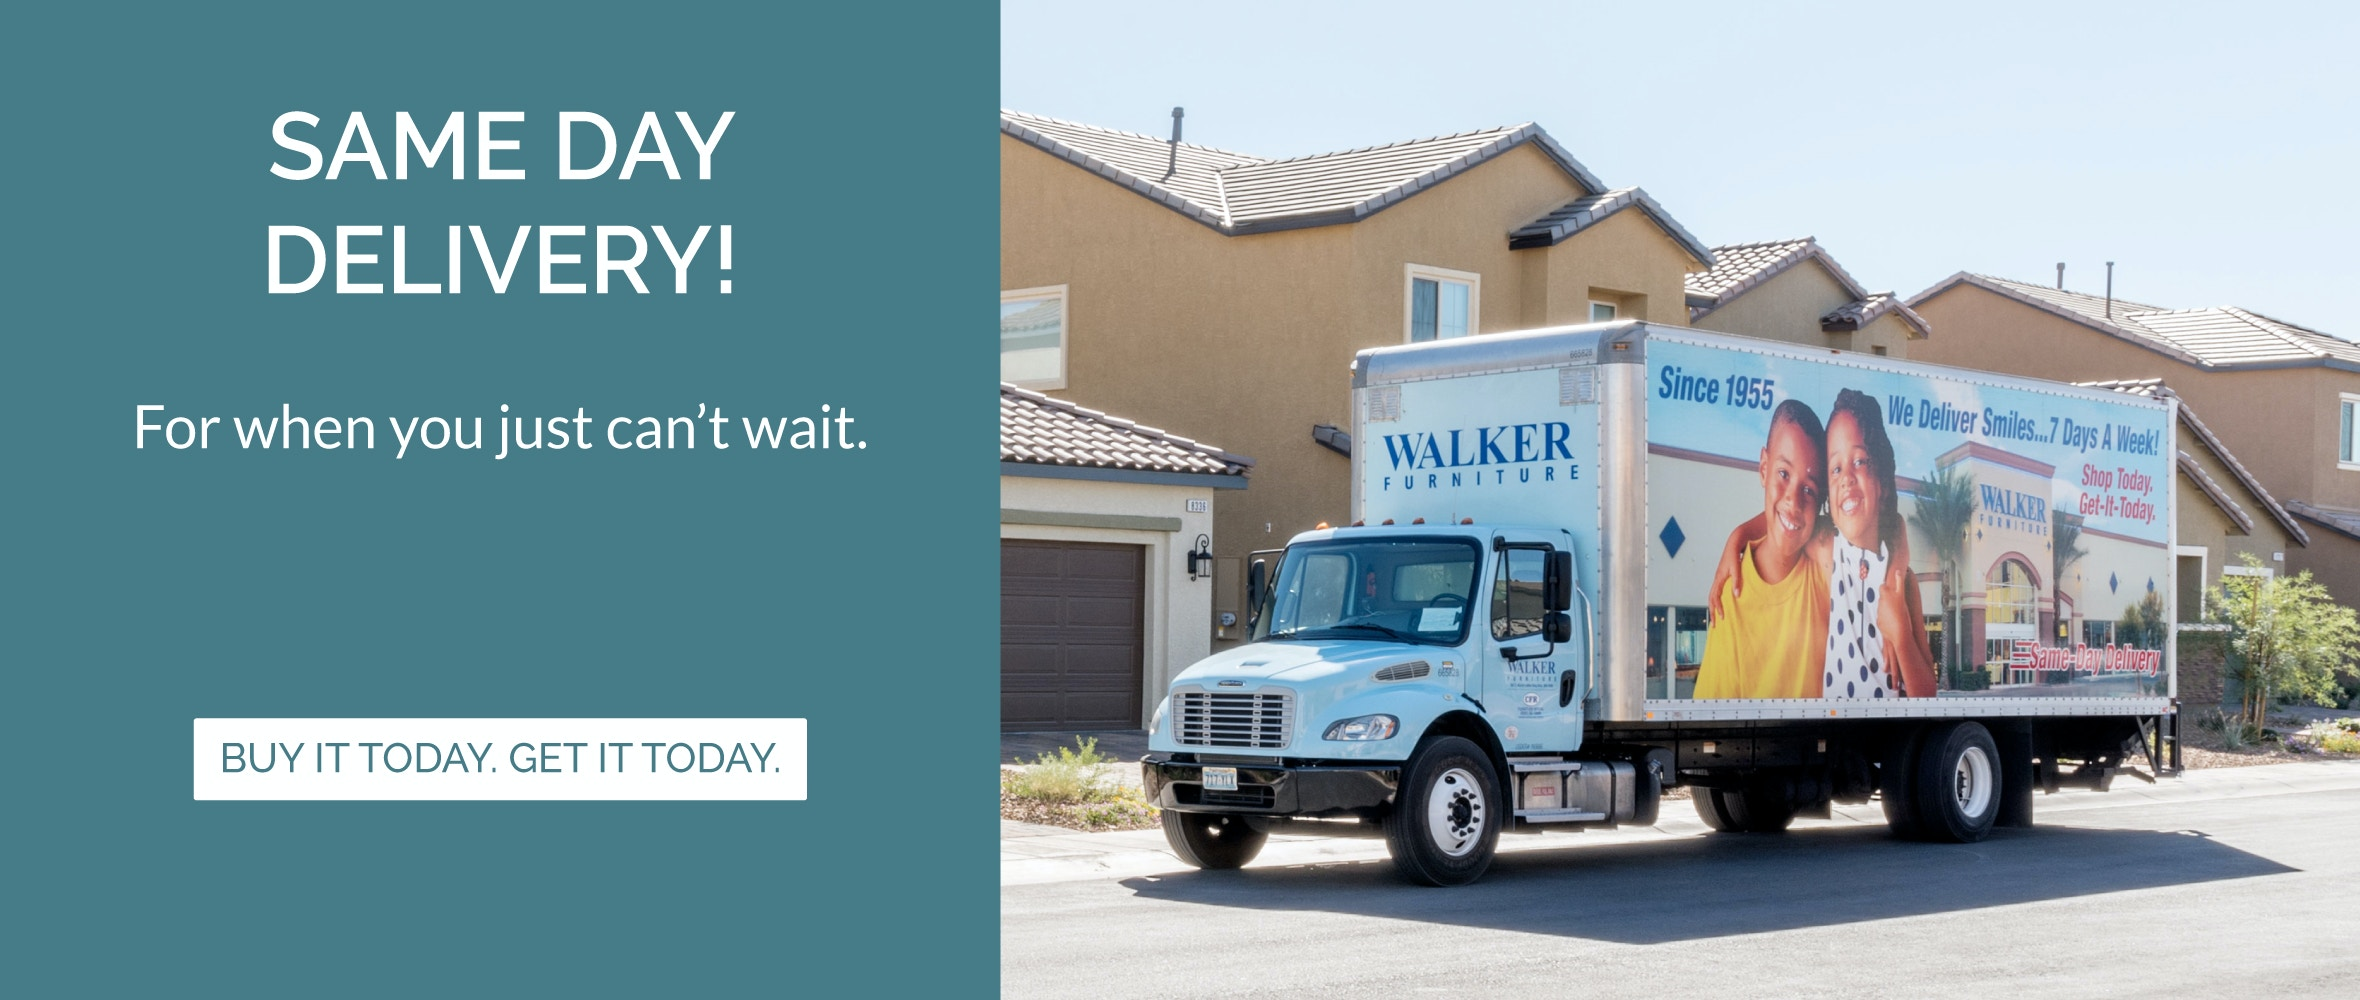 Same Day Delivery From Walker Furniture